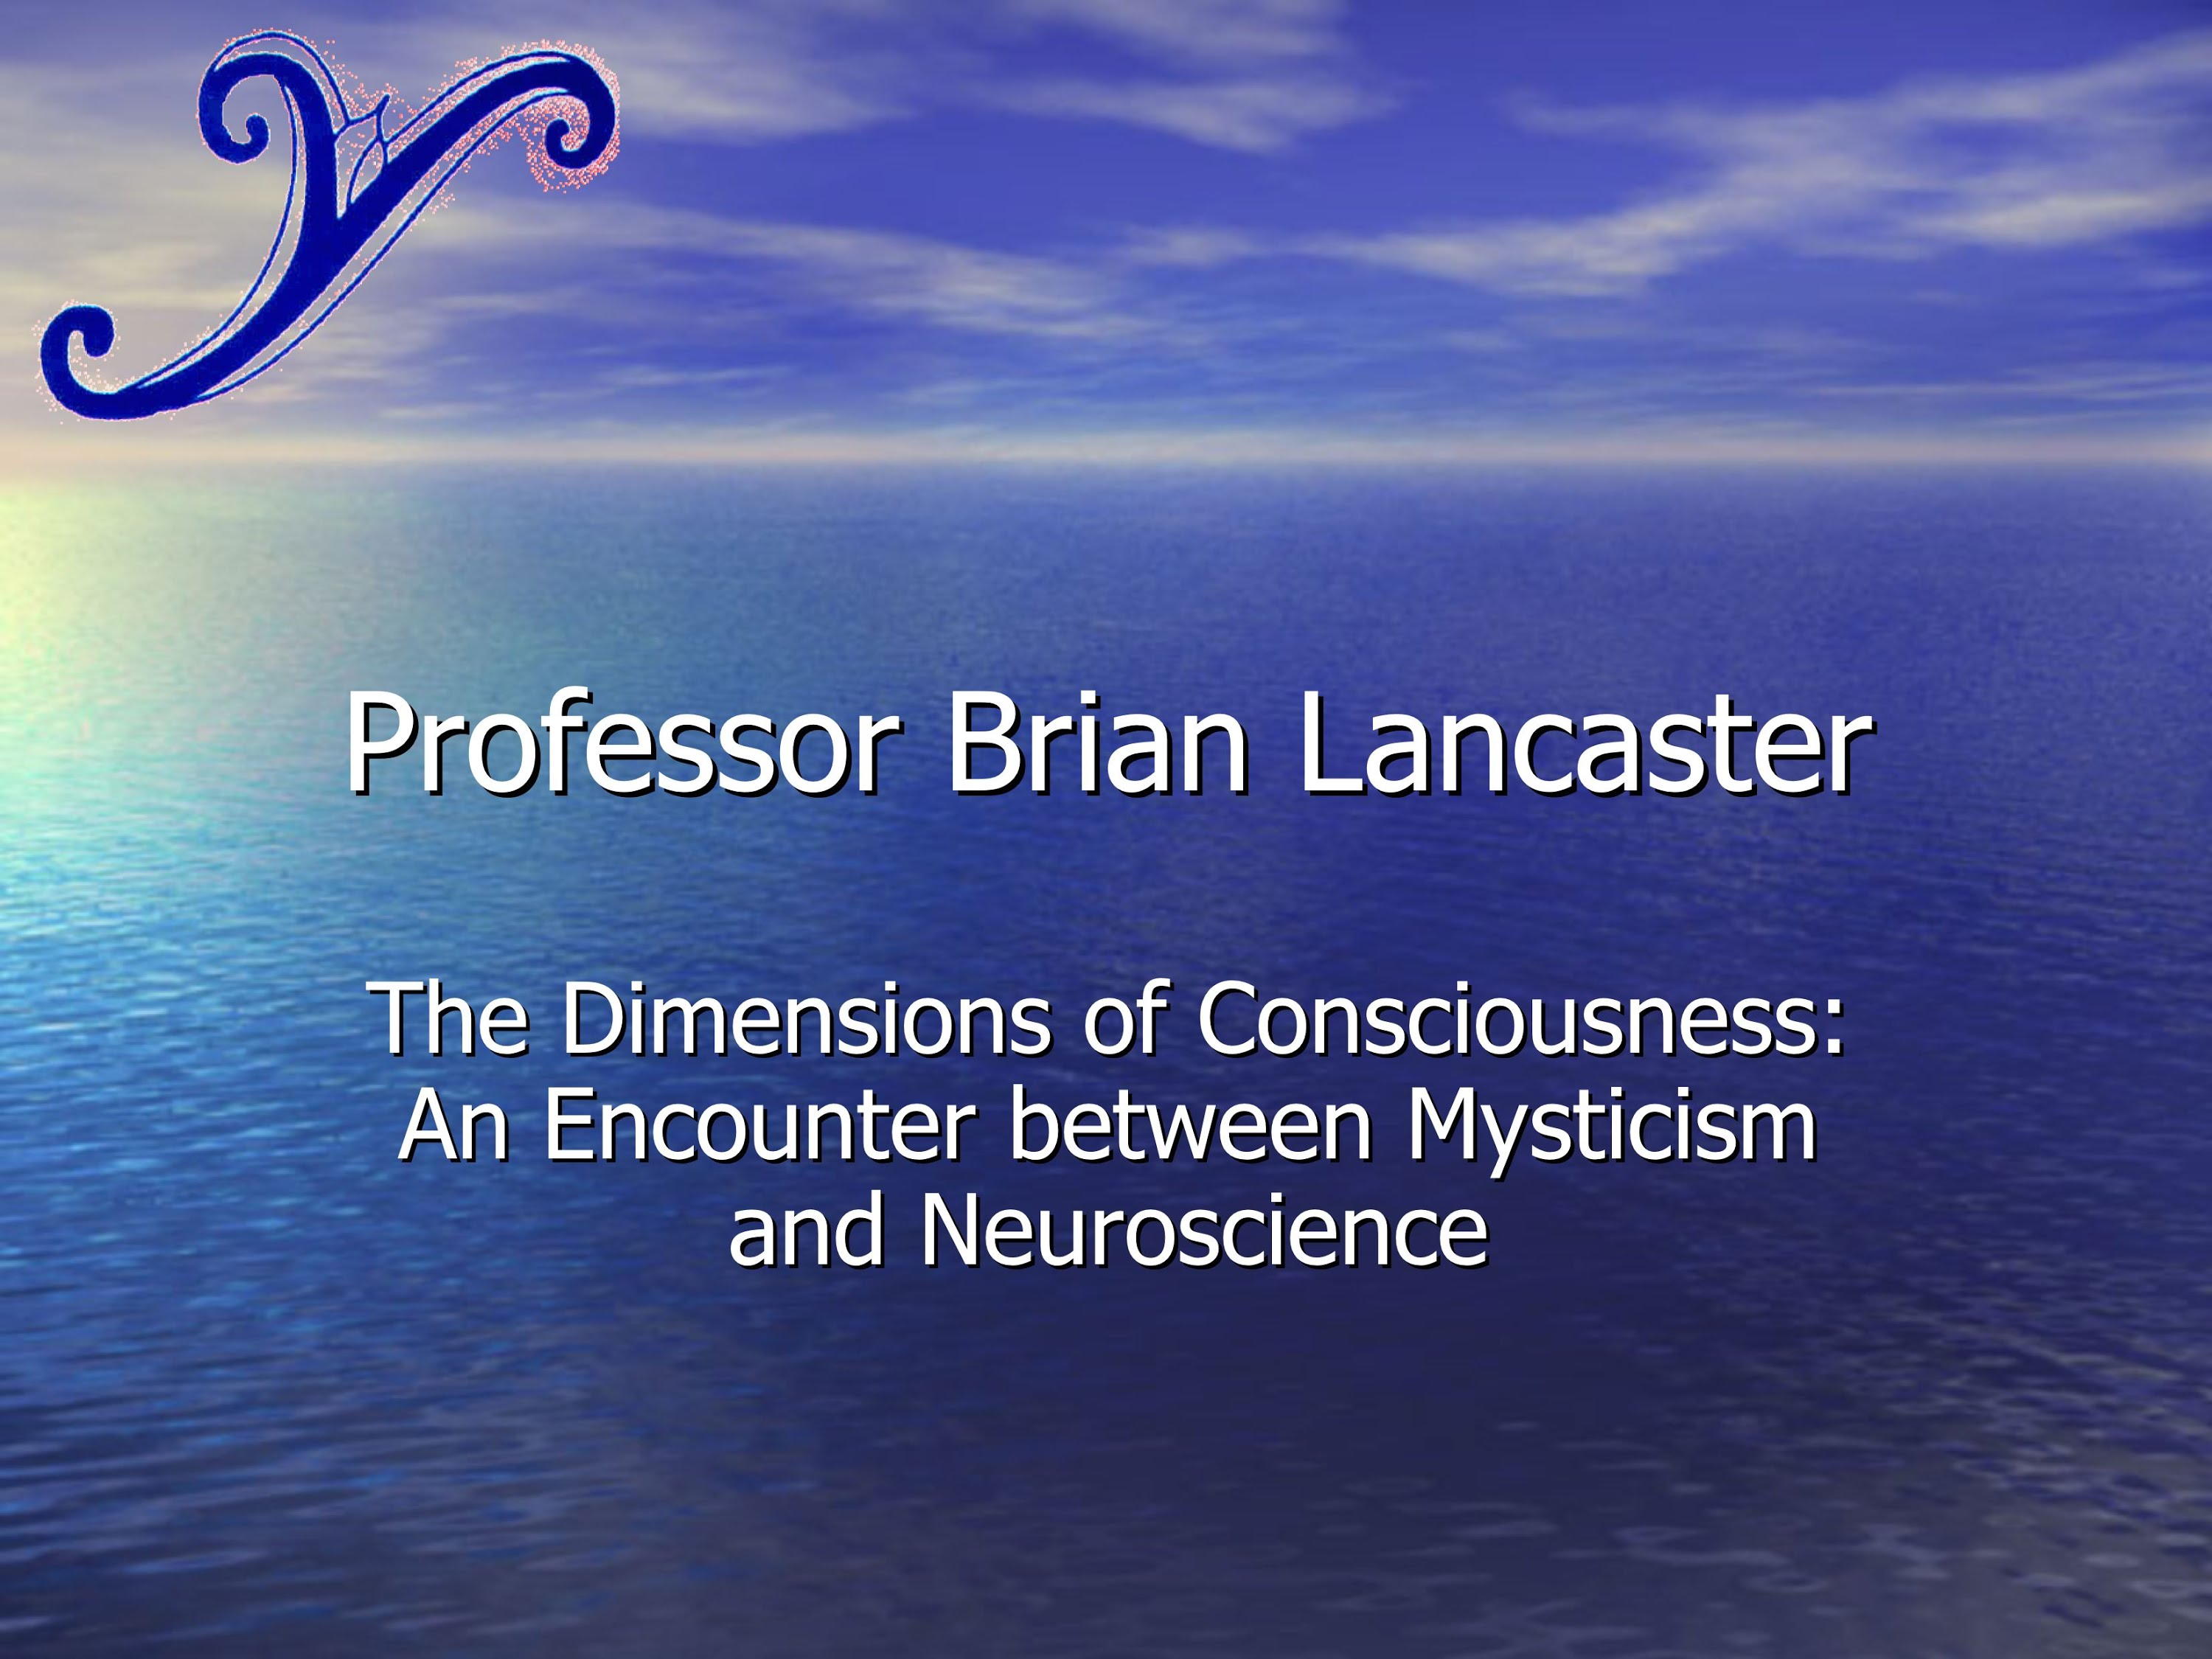 Professor Brian Lancaster - Dimensions of Consciousness: Mysticism and Neuroscience